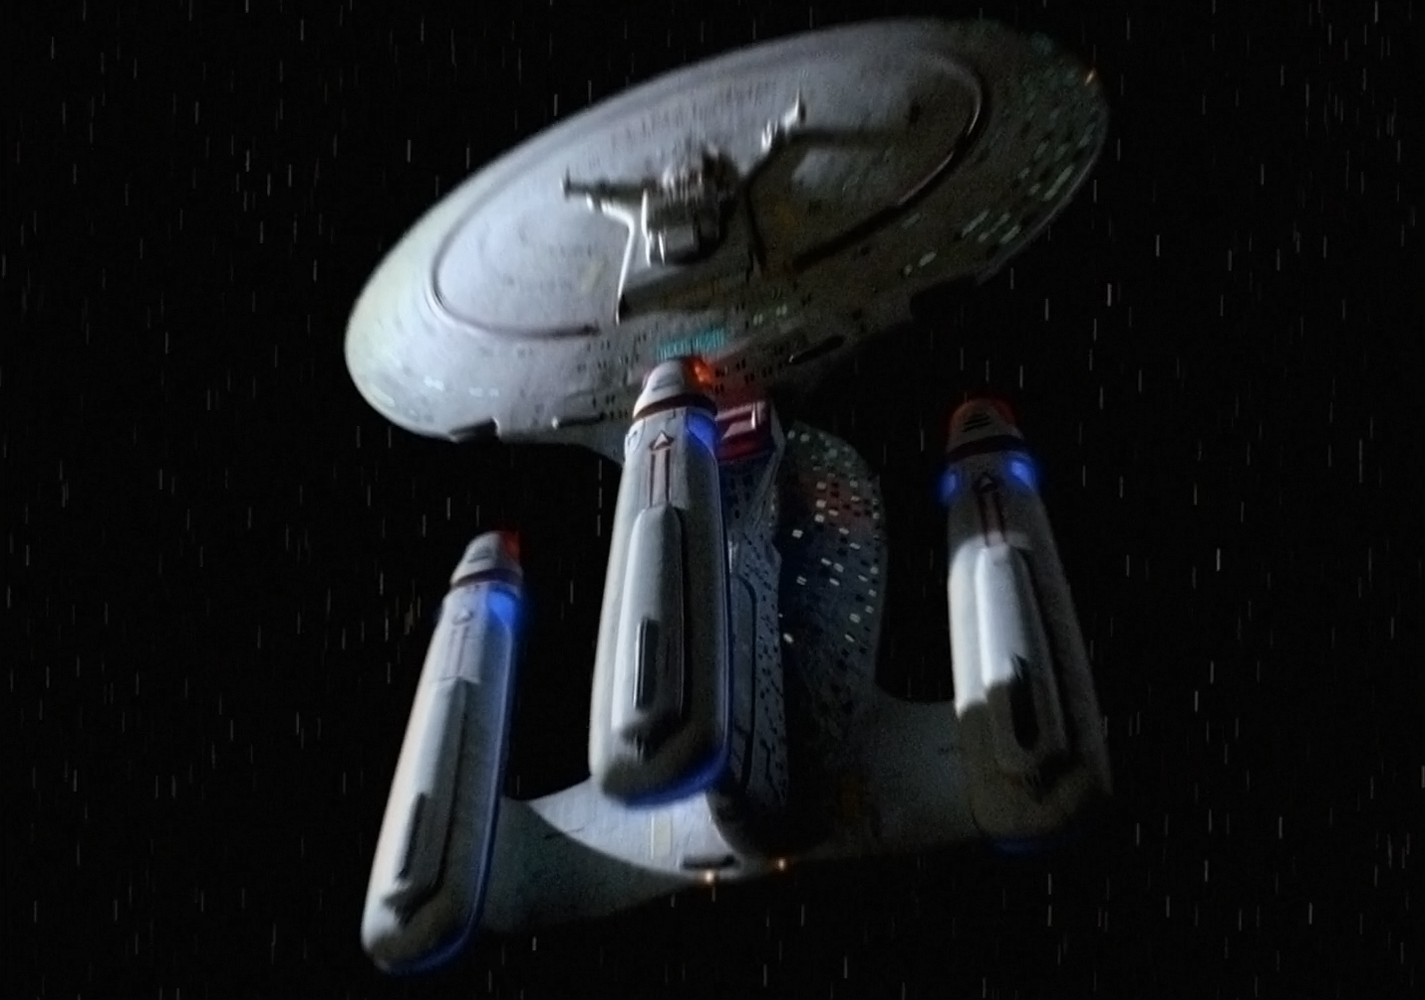 star trek future starship - photo #23